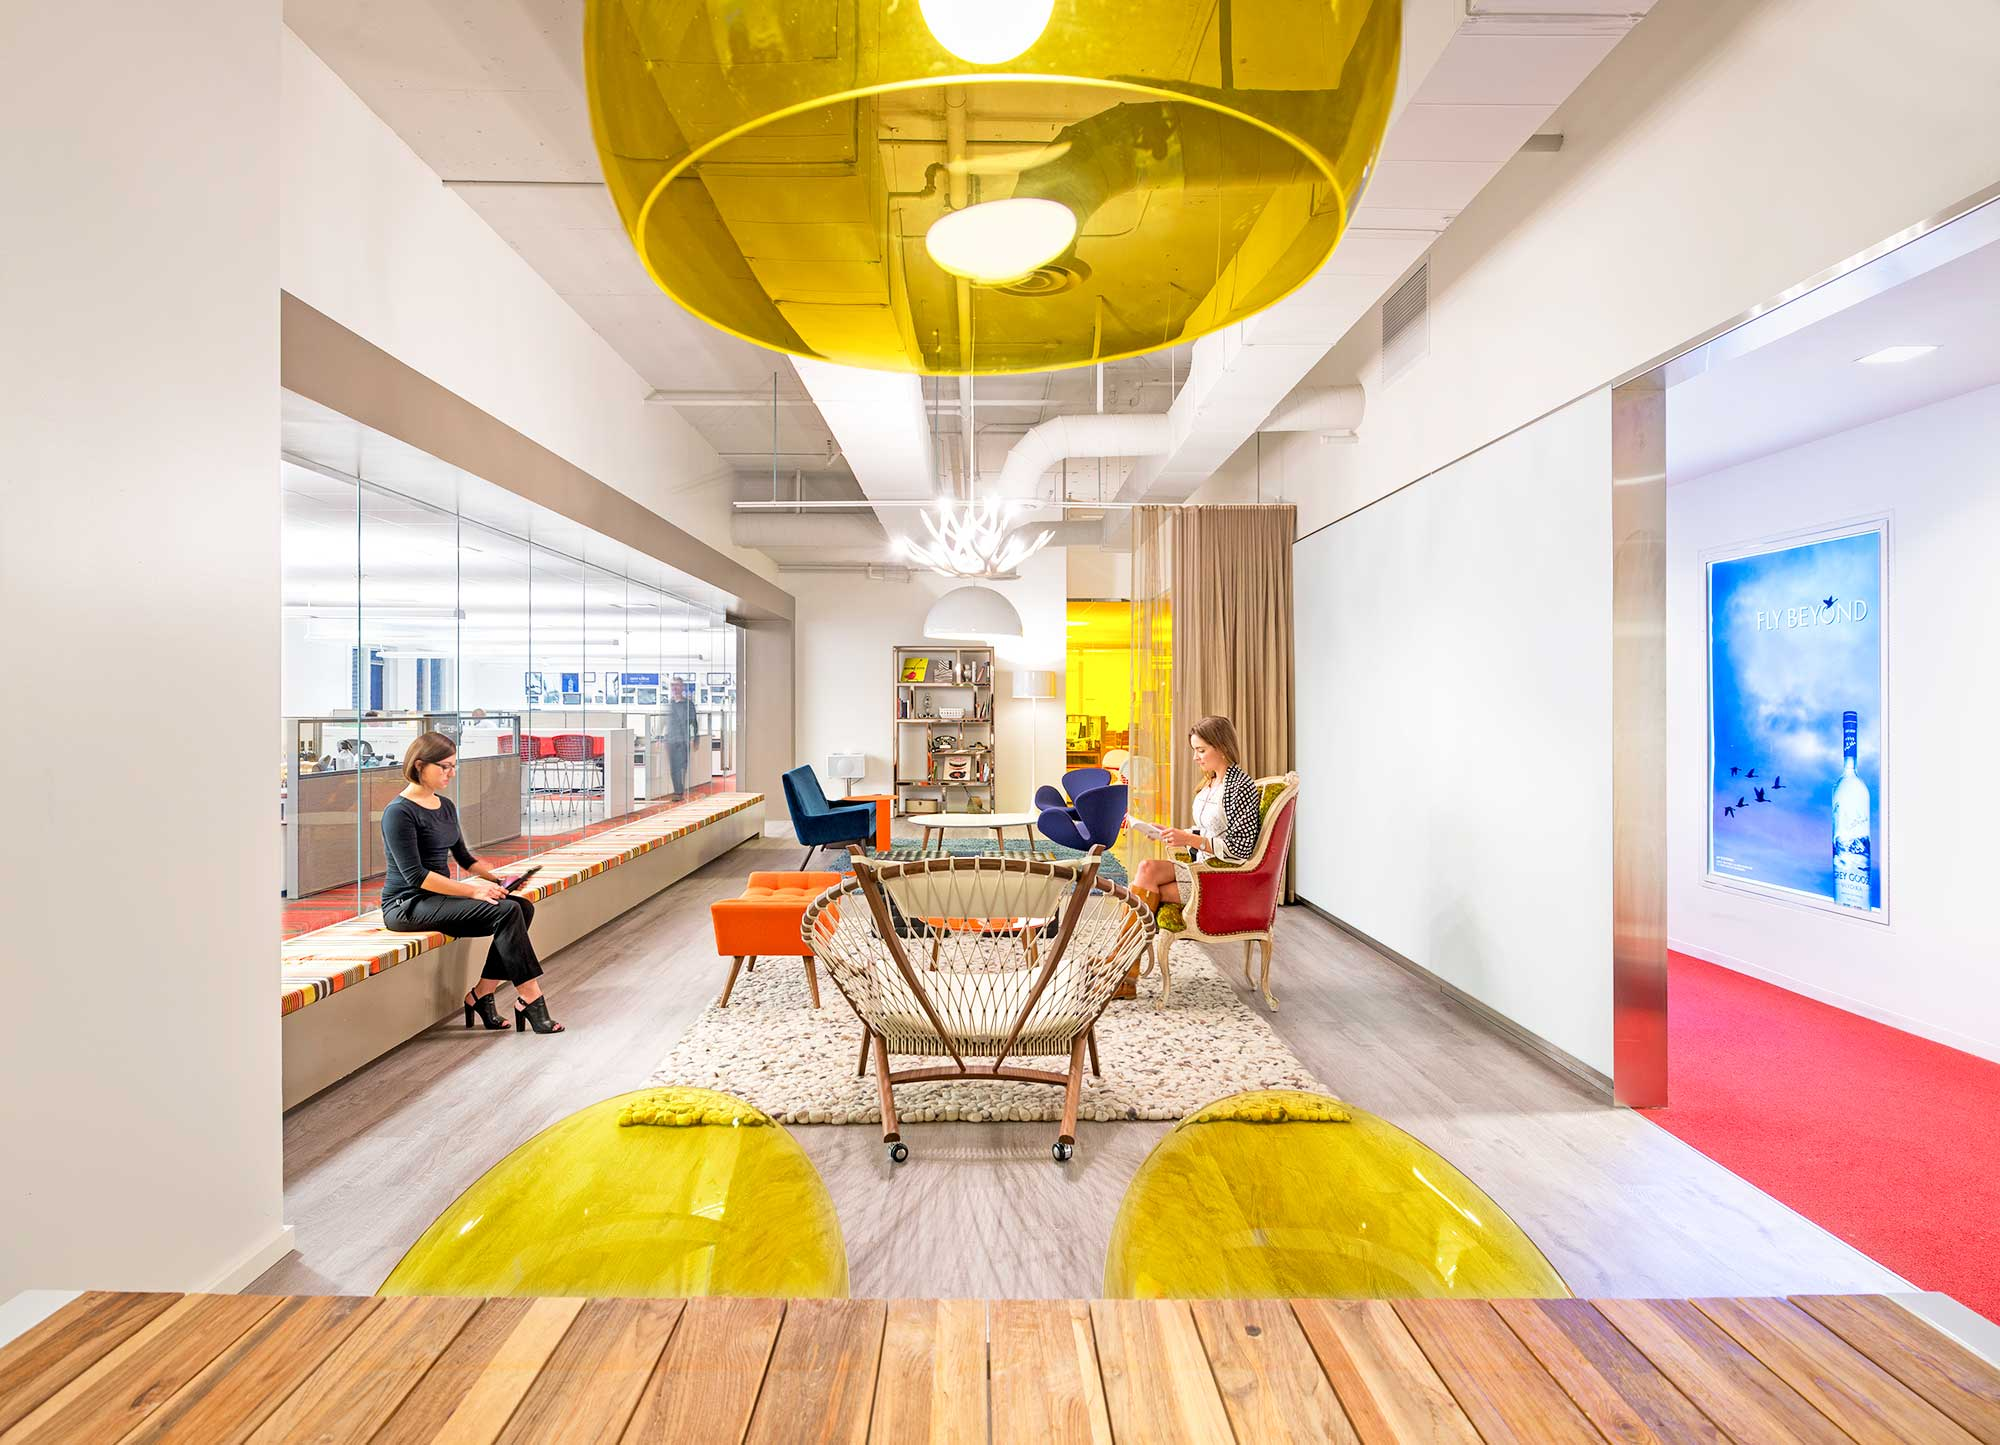 The future of workplace gensler for Big office design